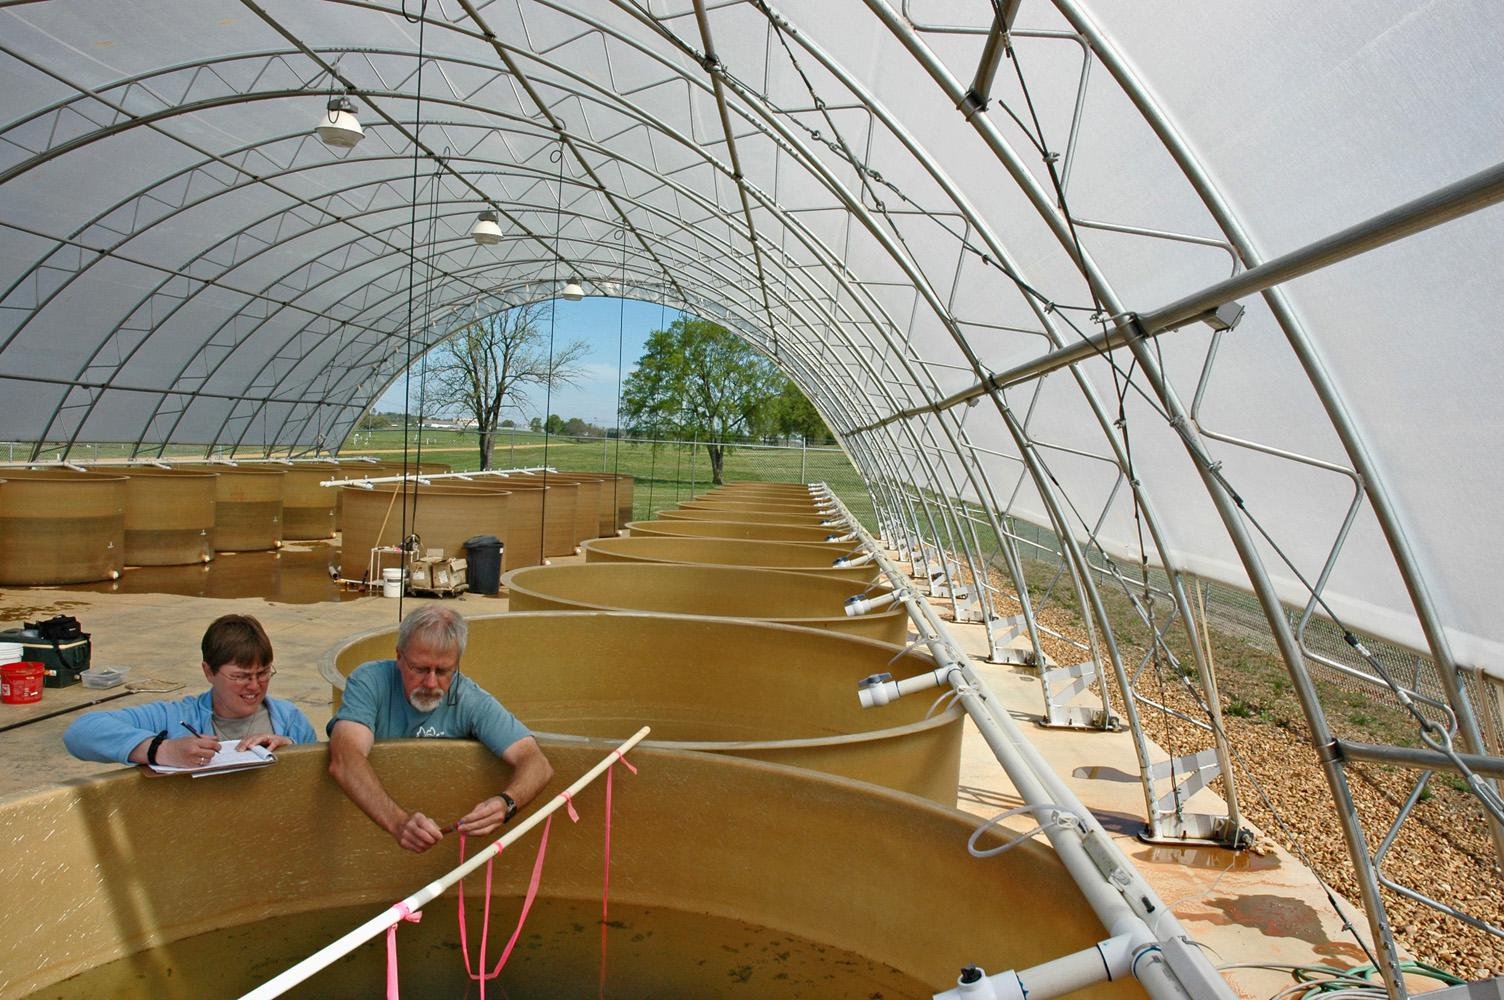 MSU doctoral student Erica Schlickeisen, left, and her major professor, aquatic ecologist Eric Dibble, prepare to sample plants in one of the tanks at the mesocosm on MSU's South Farm. (Photo by MSU Department of Wildlife and Fisheries/Sandor Dibble)